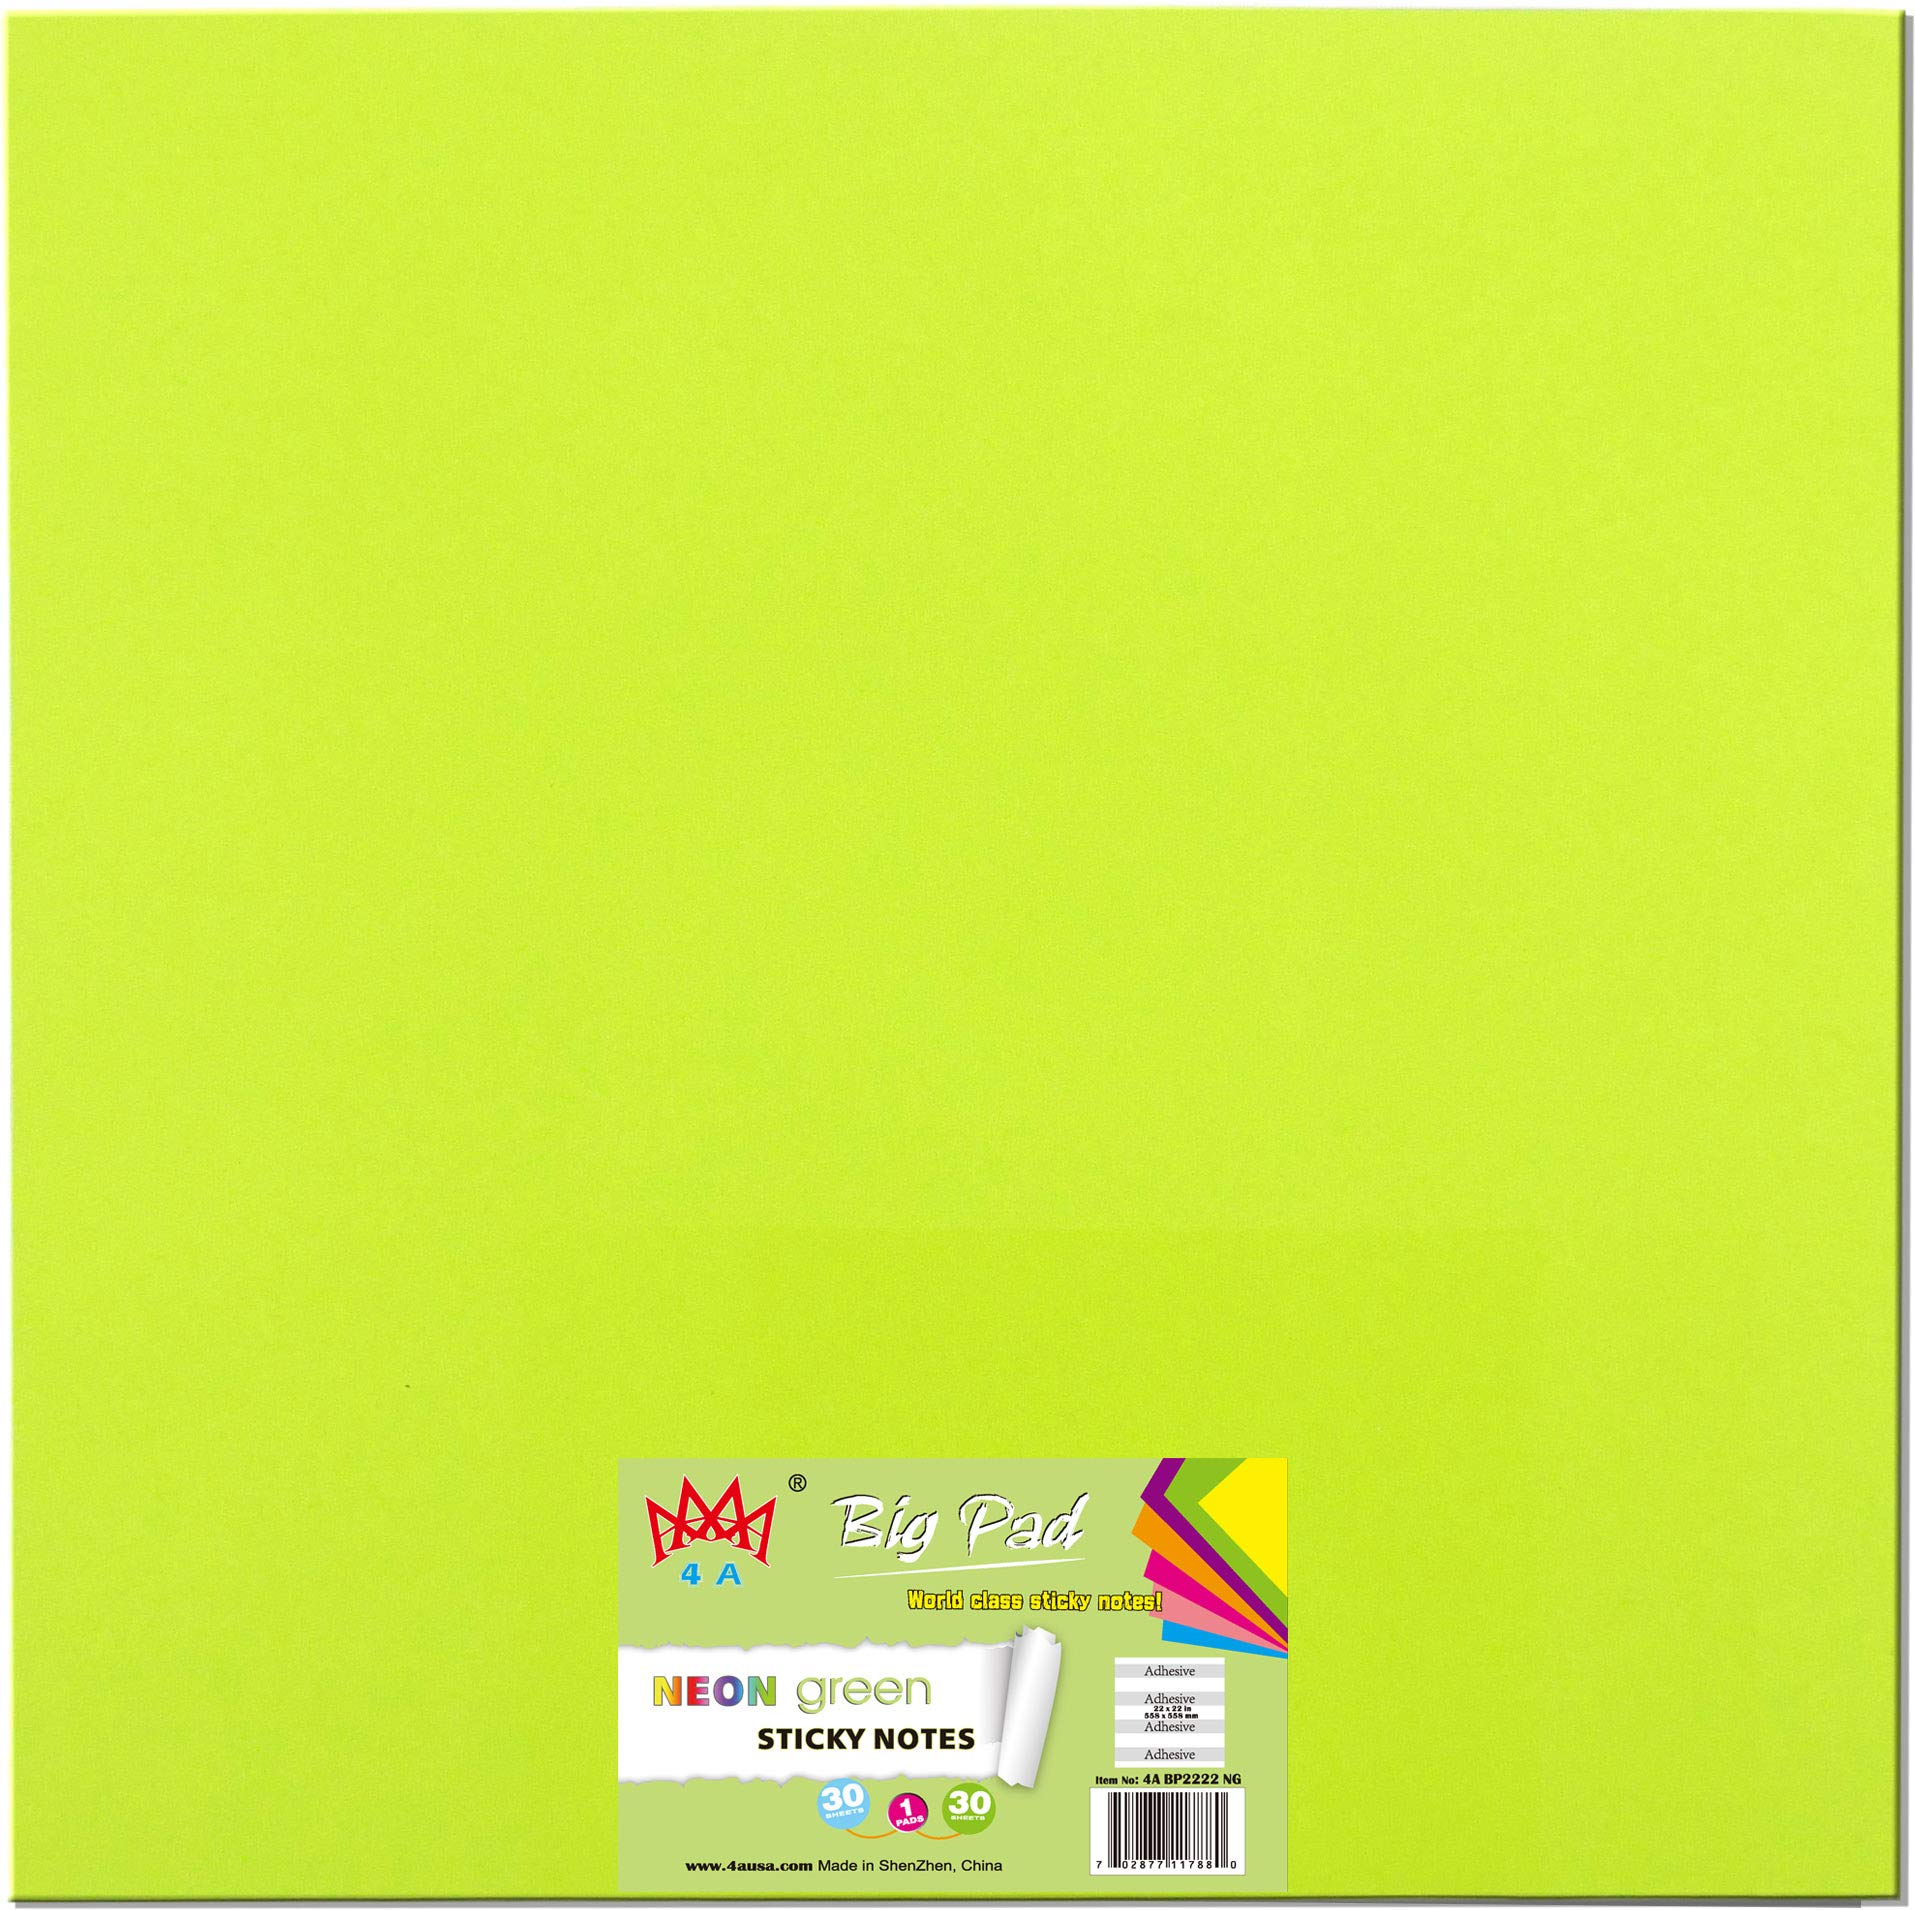 4A Sticky Big Pad,22 x 22 Inches,Neon Green,Self-Stick Notes,30 Sheets/Pad,1 Pad/Pack,4A BP2222 NG